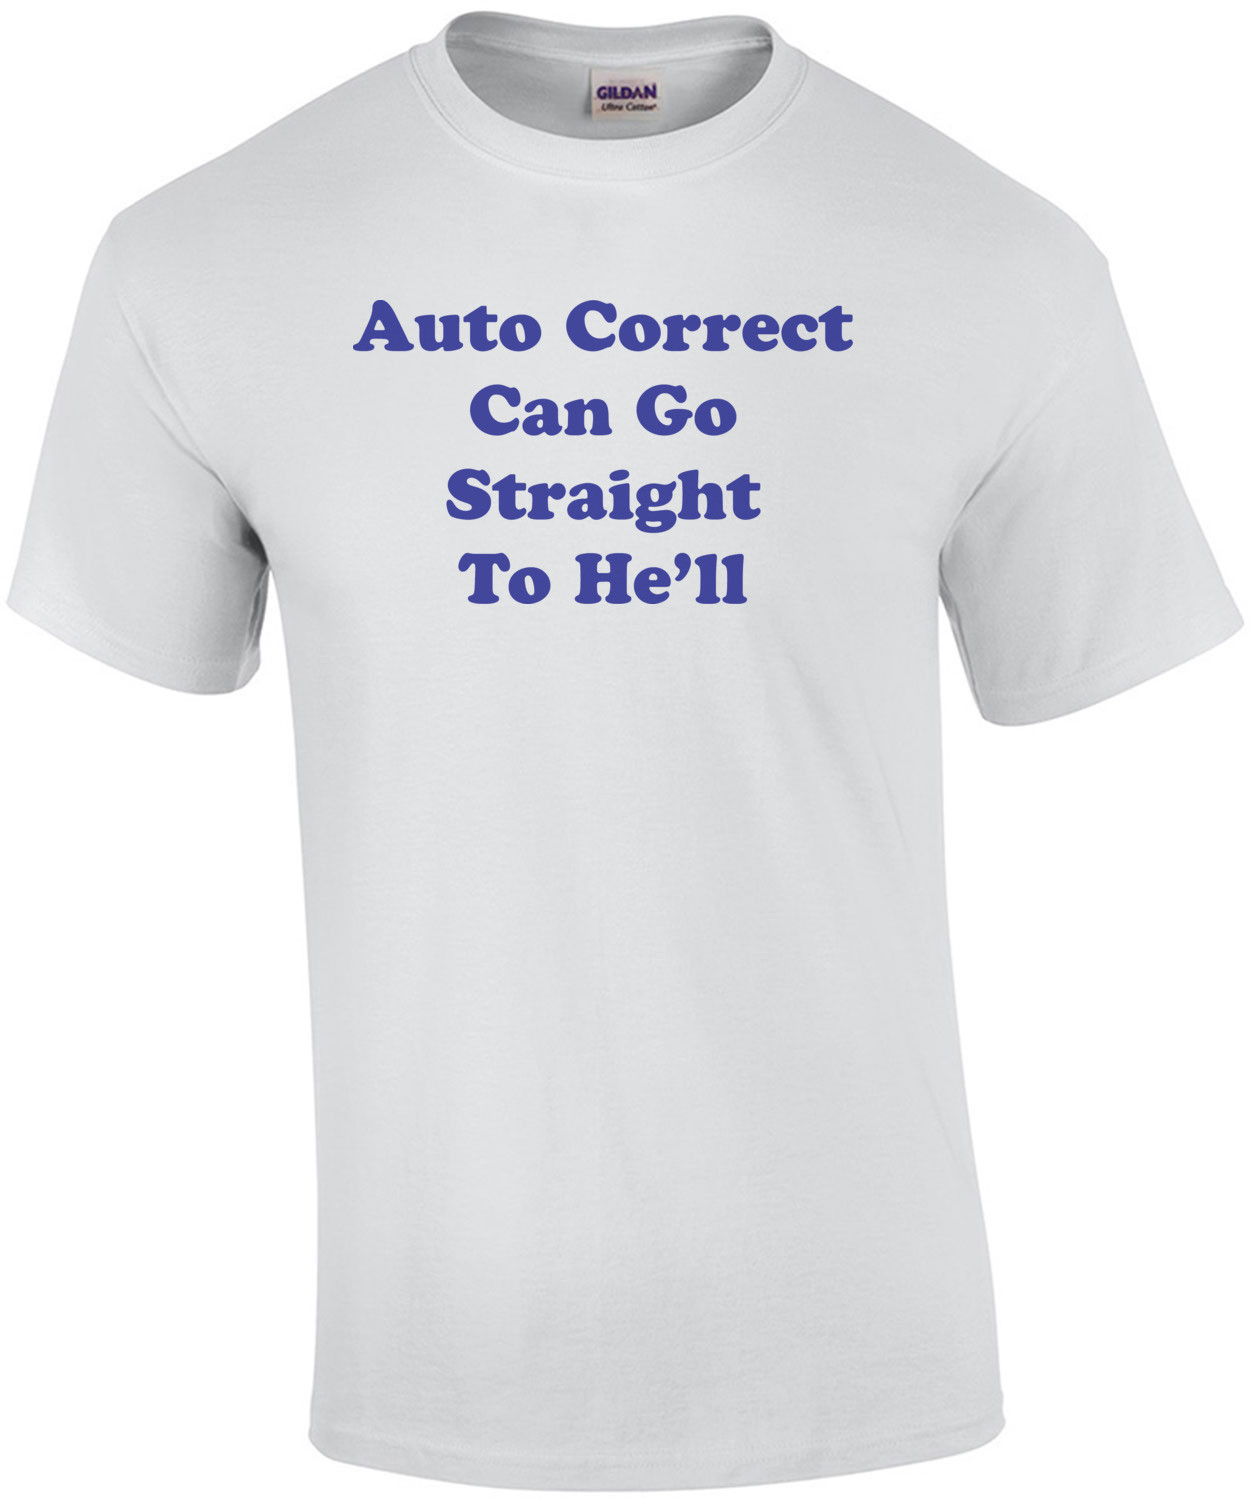 Auto Correct Can Go Straight To He'll